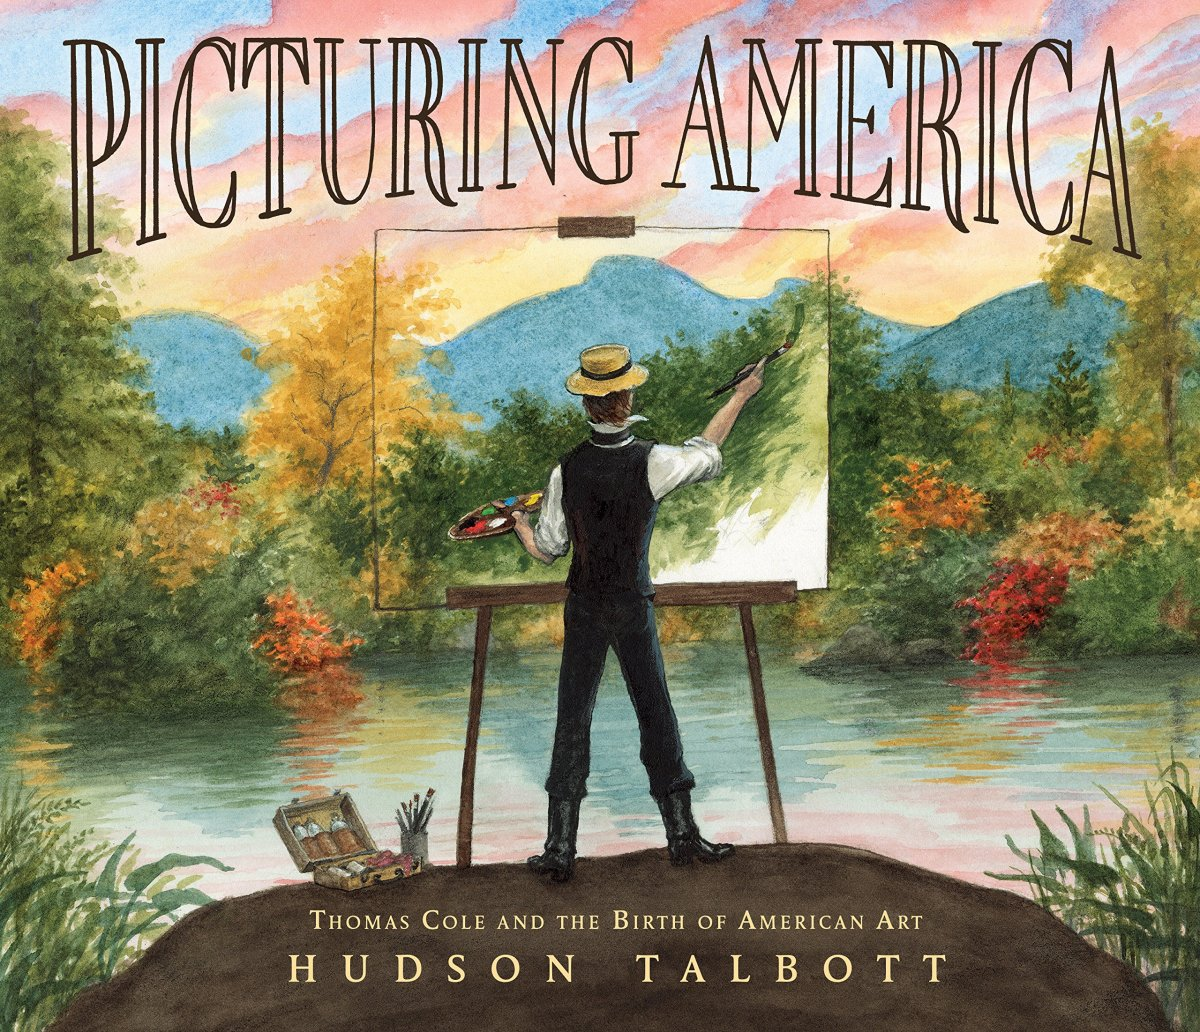 picturing america cover image